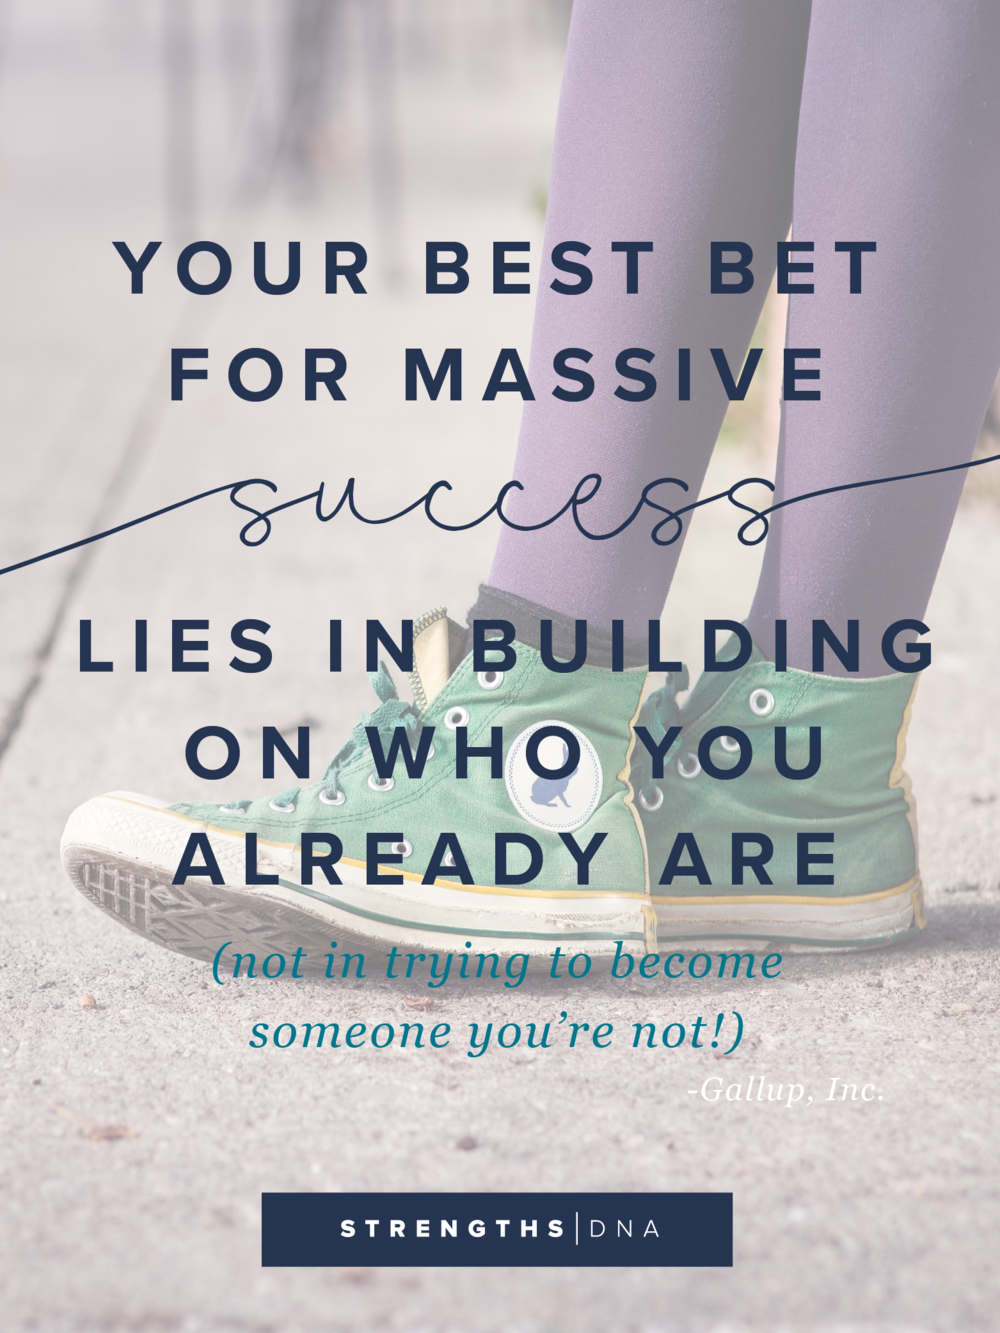 Your Best Bet for Massive Success Lies in Building on Who You Already Are, Not in Trying to Become Someone You're Not